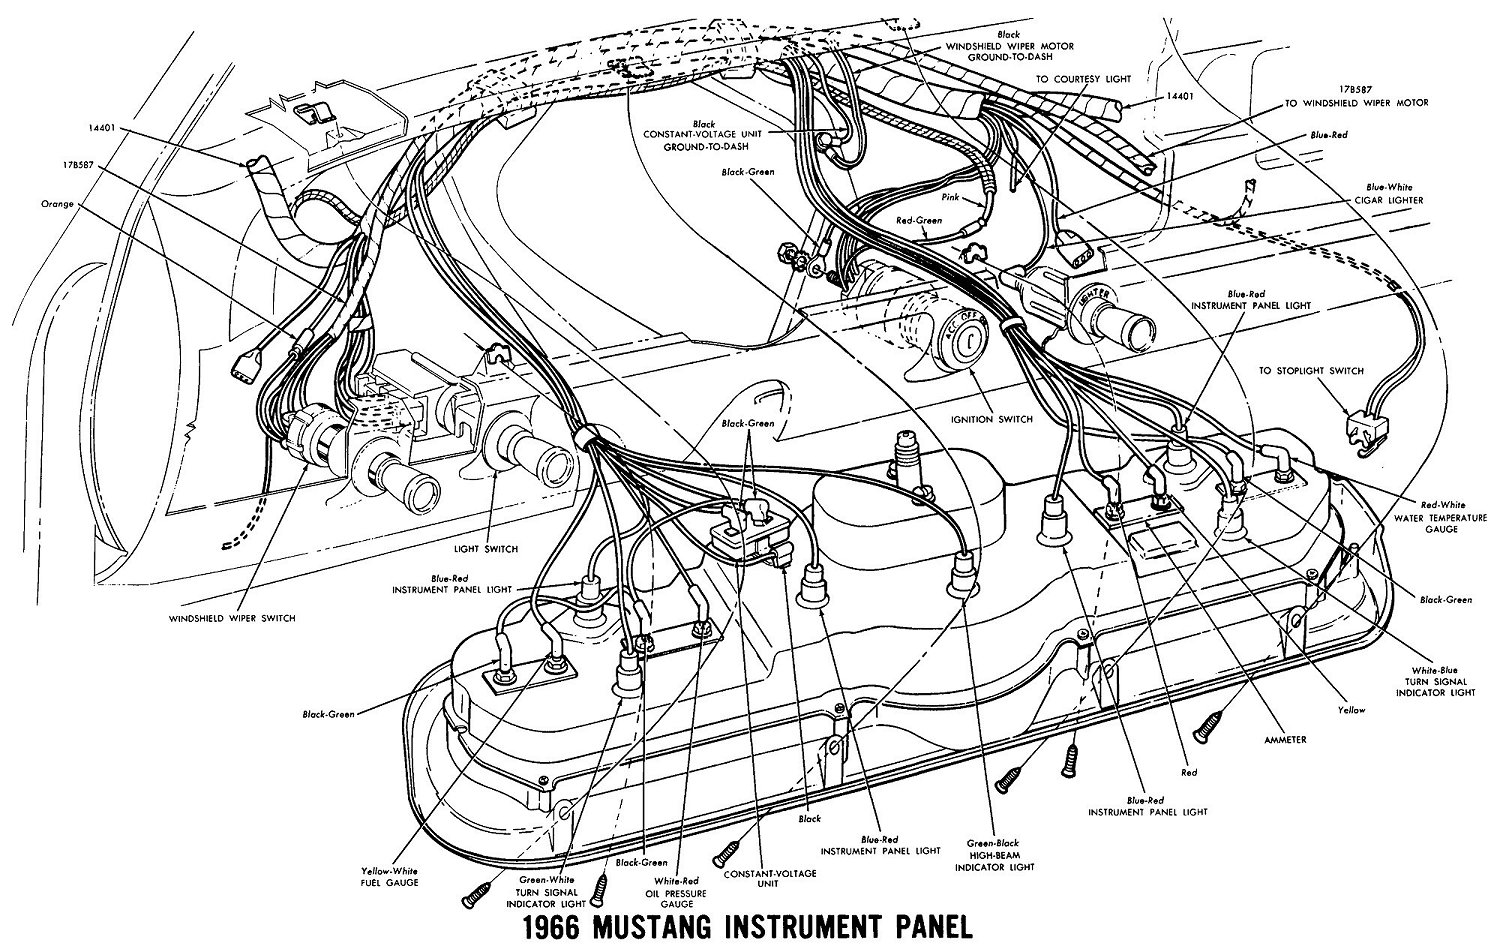 66InstrumentWiring lelu's 66 mustang 1966 mustang wiring diagrams 1966 mustang wiring harness diagram at virtualis.co